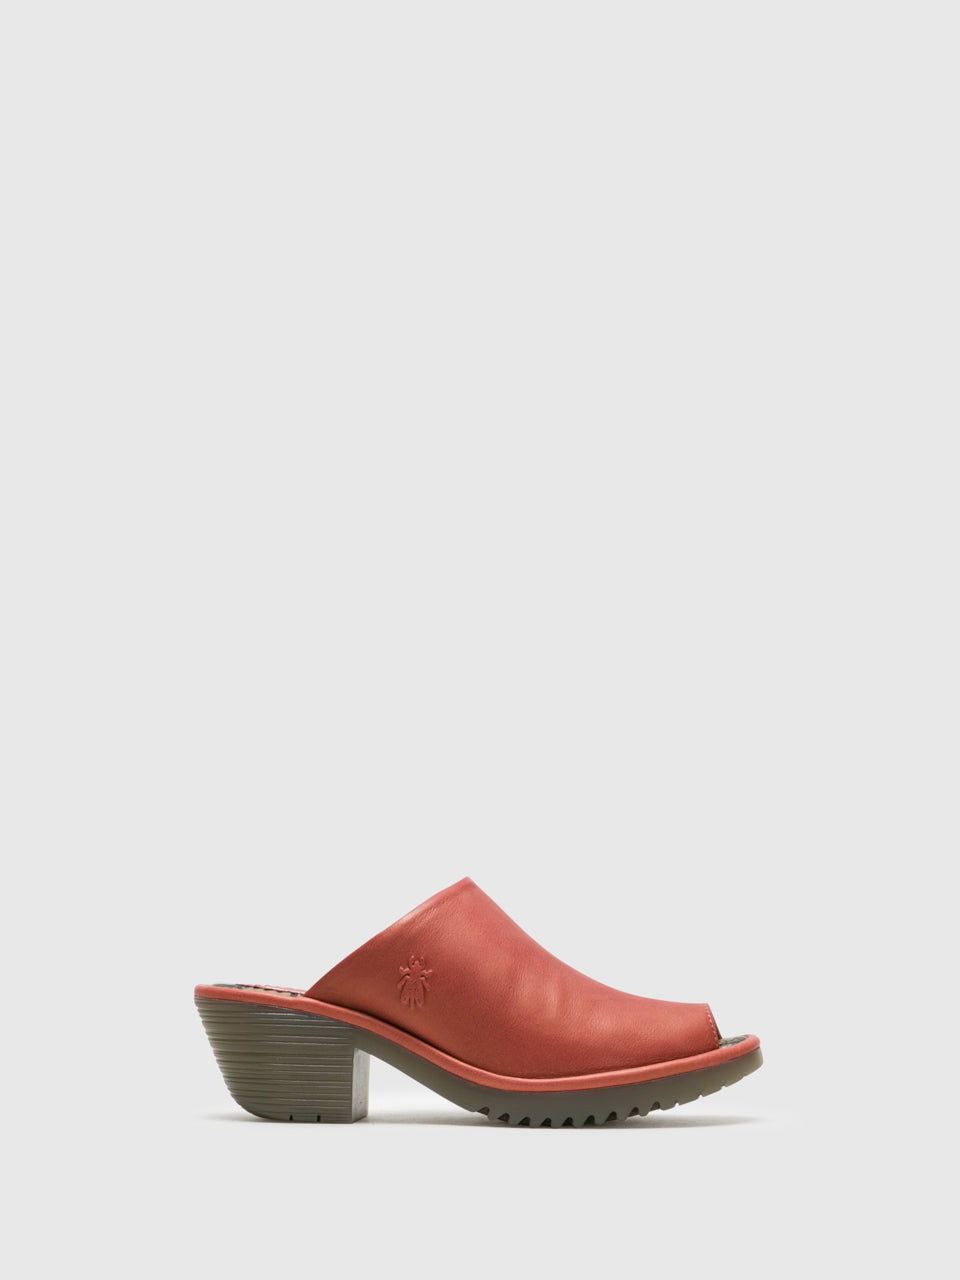 Fly London Mules mit offener Kappe in Rosa